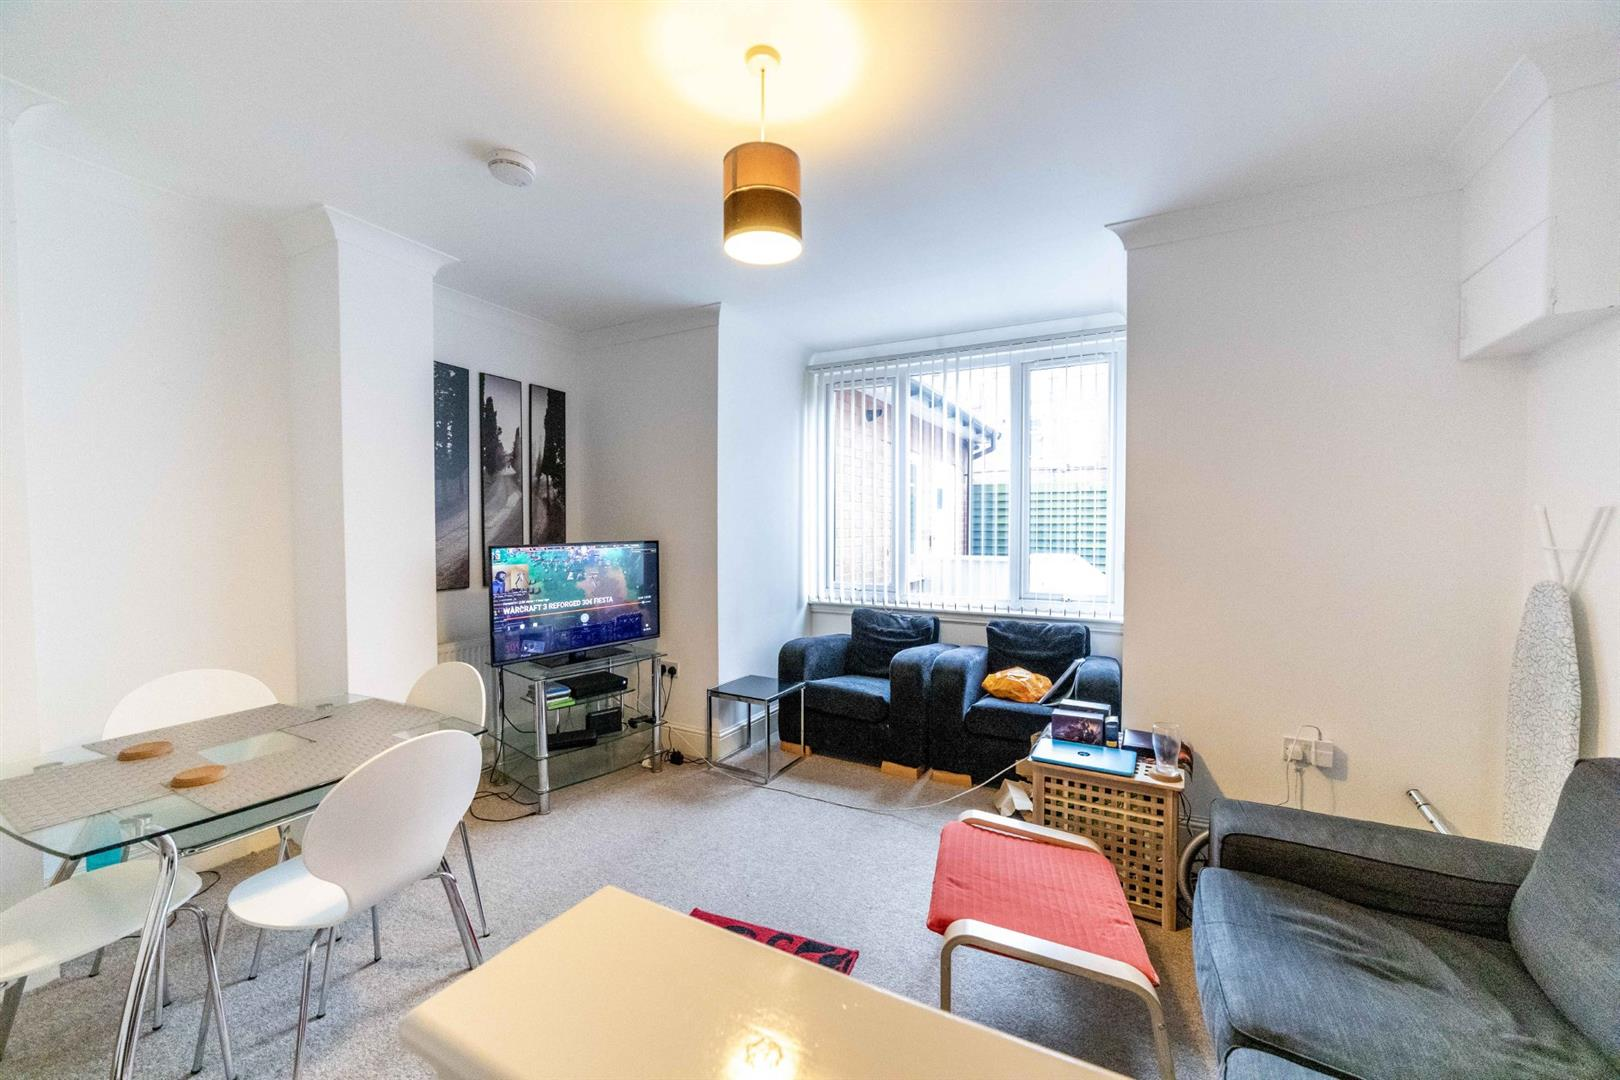 2 bed apartment to rent in Otterburn Villas, Newcastle Upon Tyne, NE2